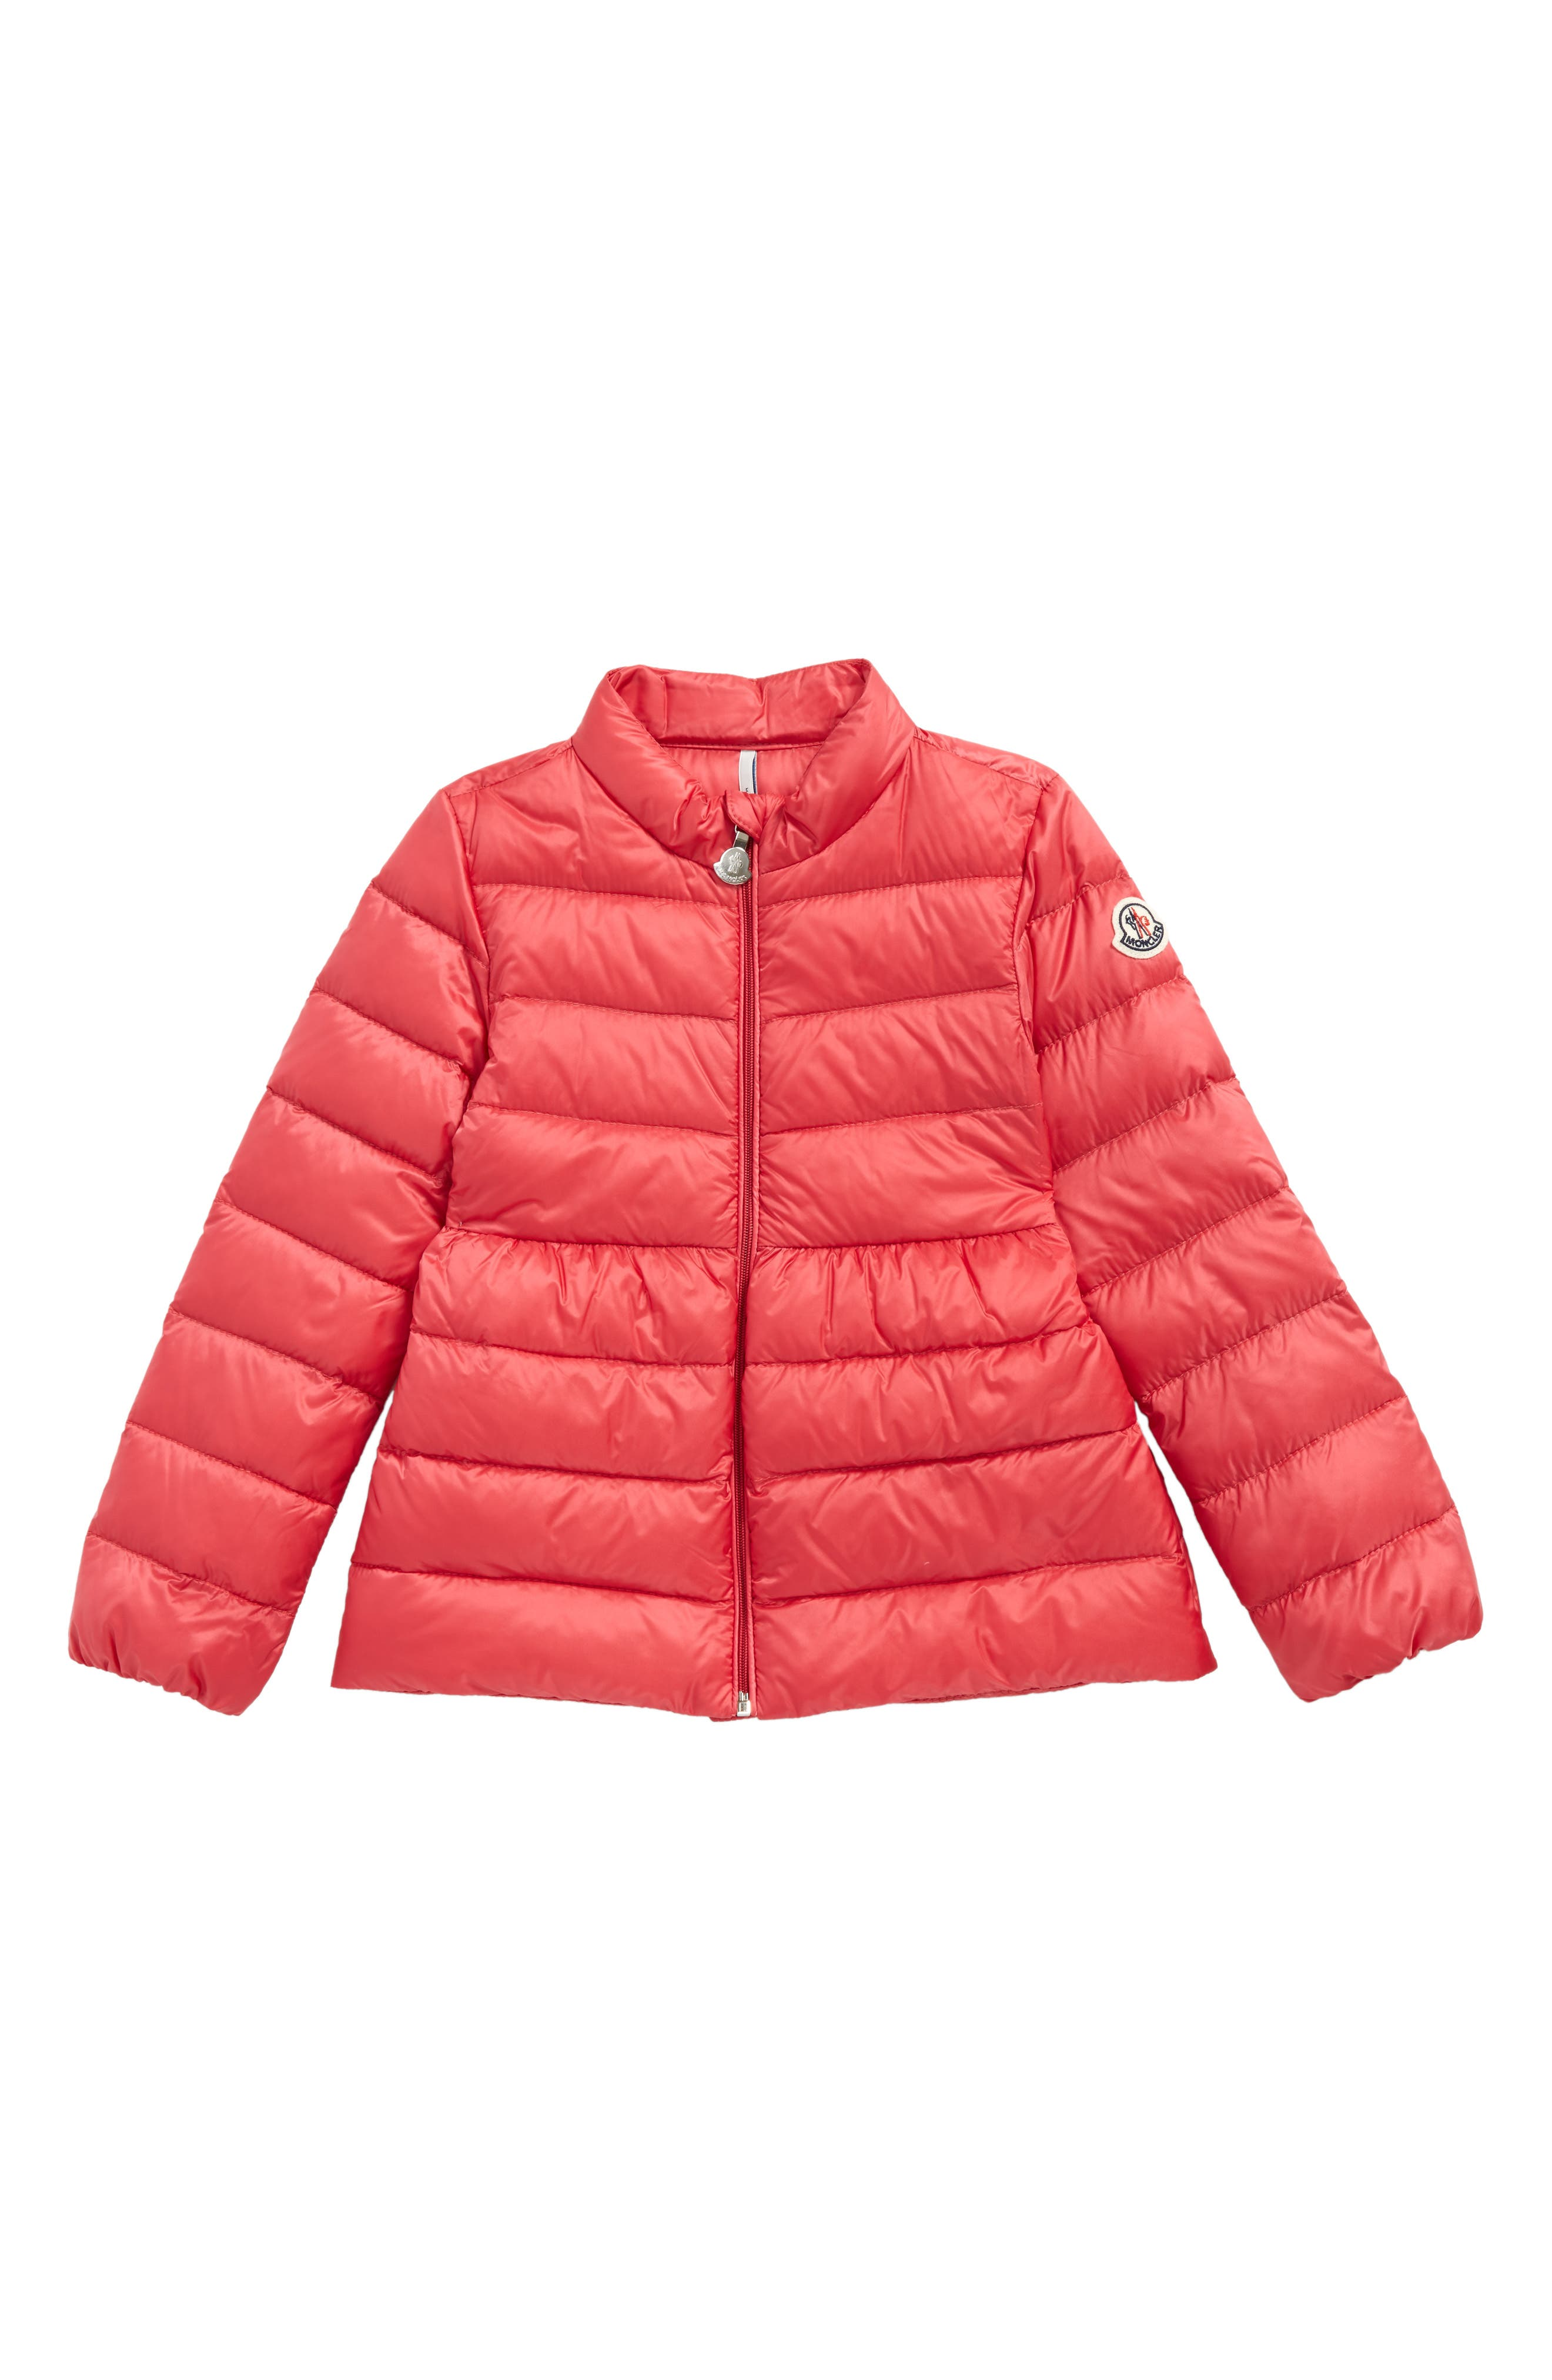 Main Image - Moncler Joelle Goose Down Coat (Toddler Girls)